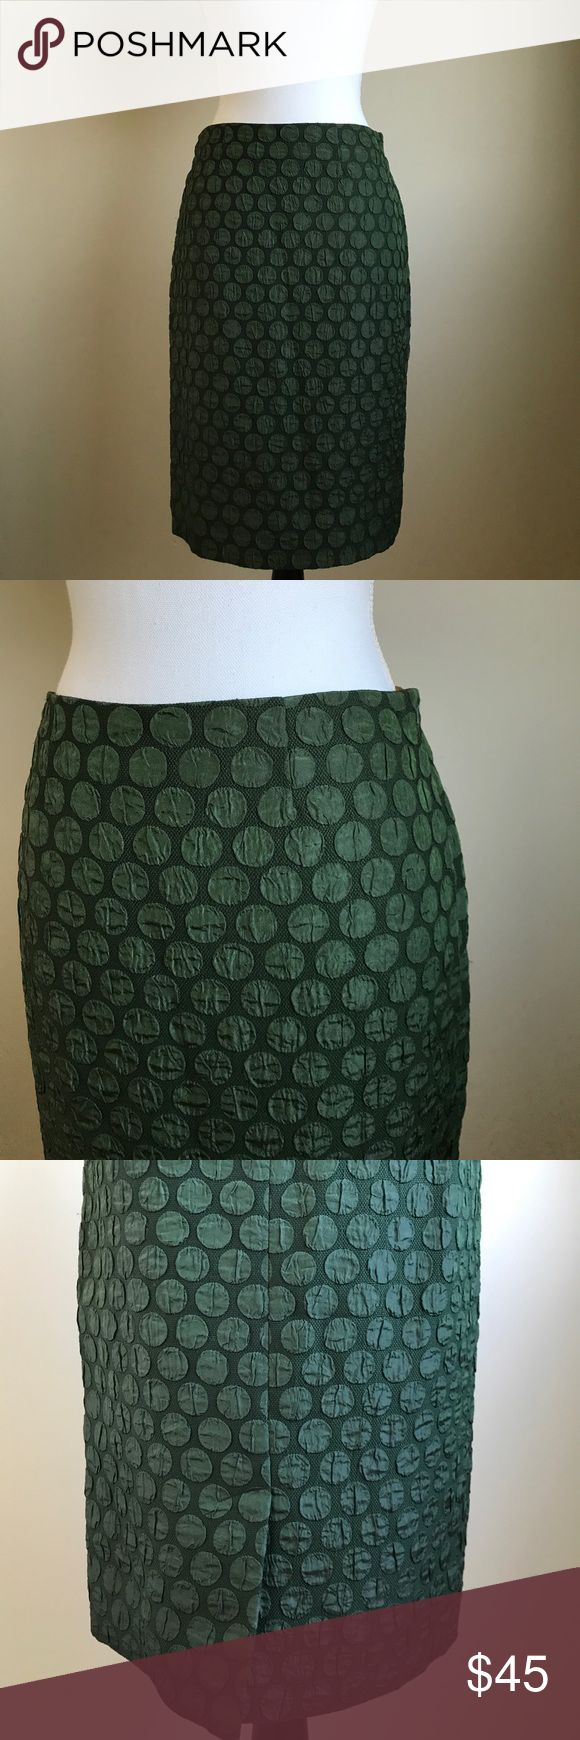 Maeve Anthropologie green pencil skirt size 2 Beautiful pencil skirt in dark green size 2. From Maeve Anthropologie. Lined. Center back slit. Circle print. Anthropologie Skirts Pencil